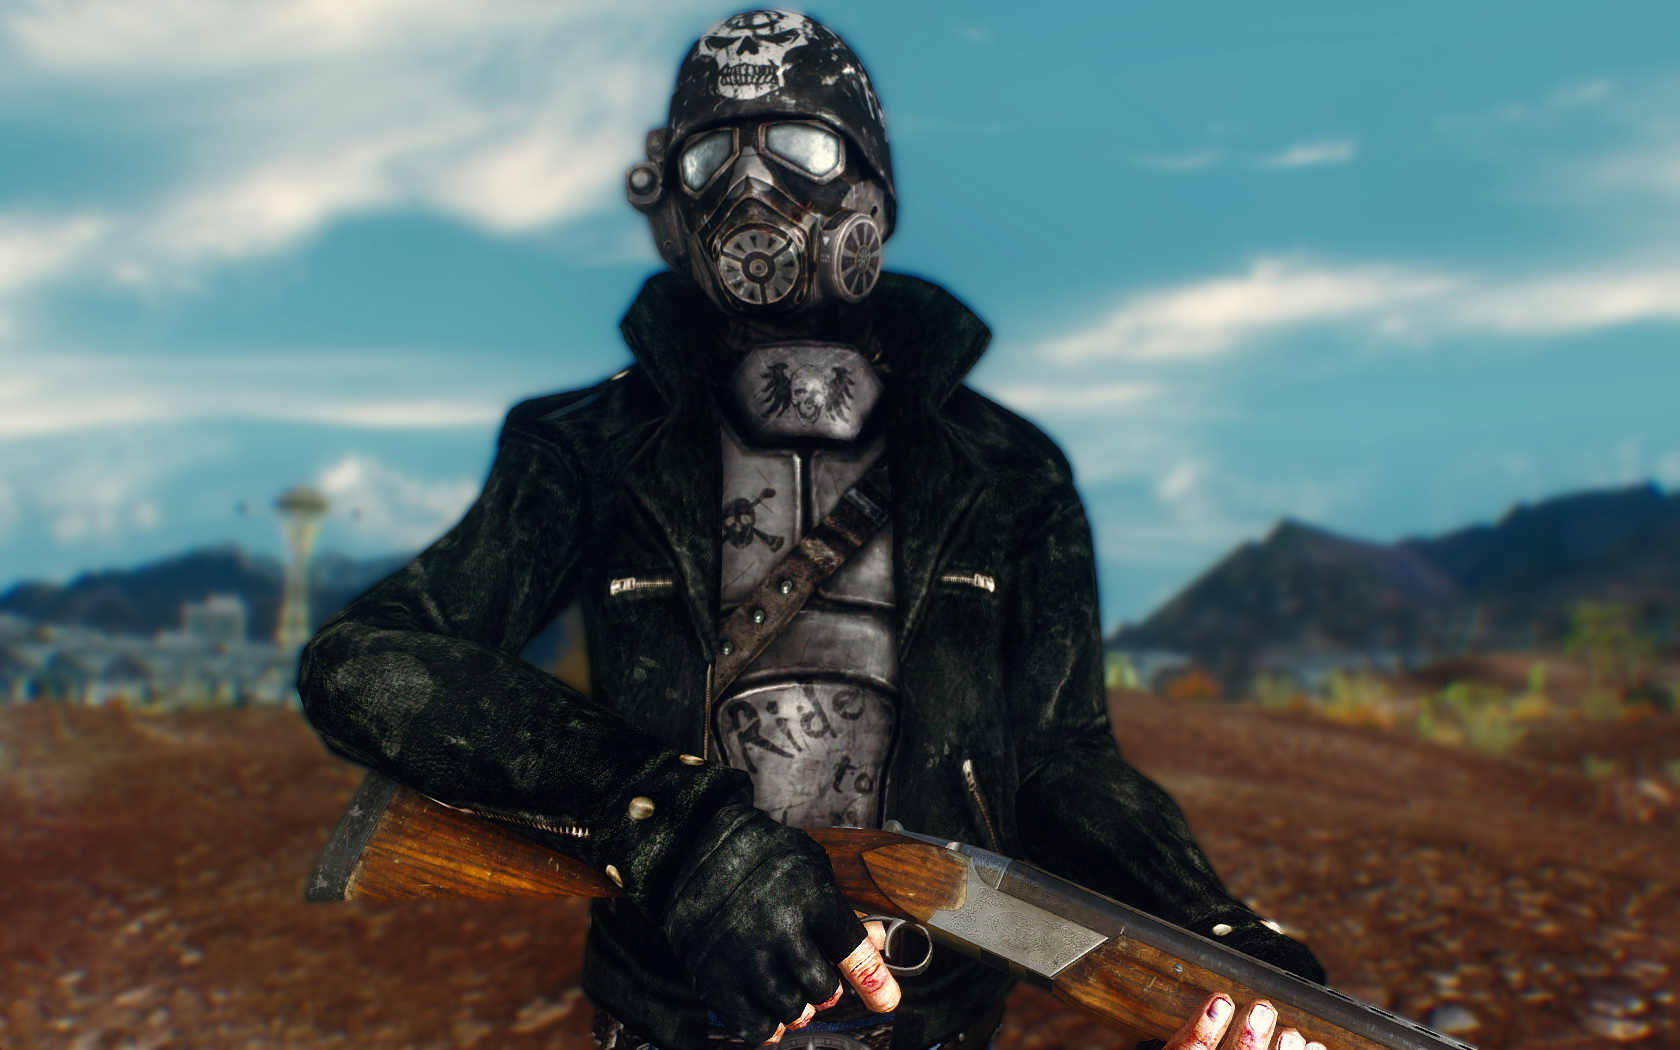 road fighter armor at fallout new vegas mods and community Oblivion Game Cover Oblivion Game Logo